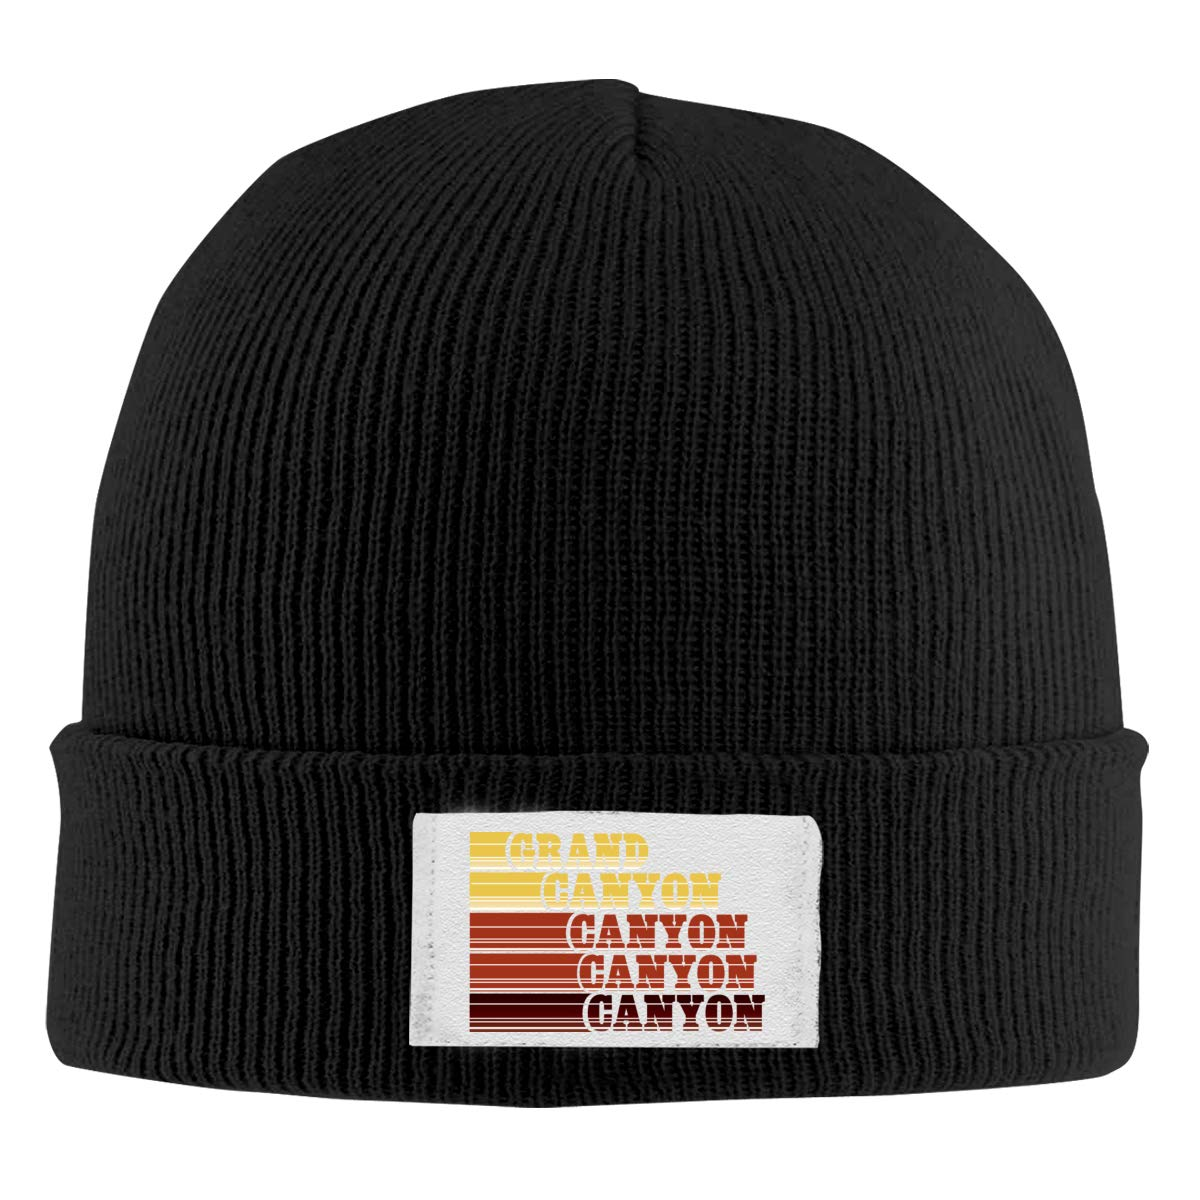 Amazon Com Grand Canyon 1 Knitted Hats Beanie Cap Funny